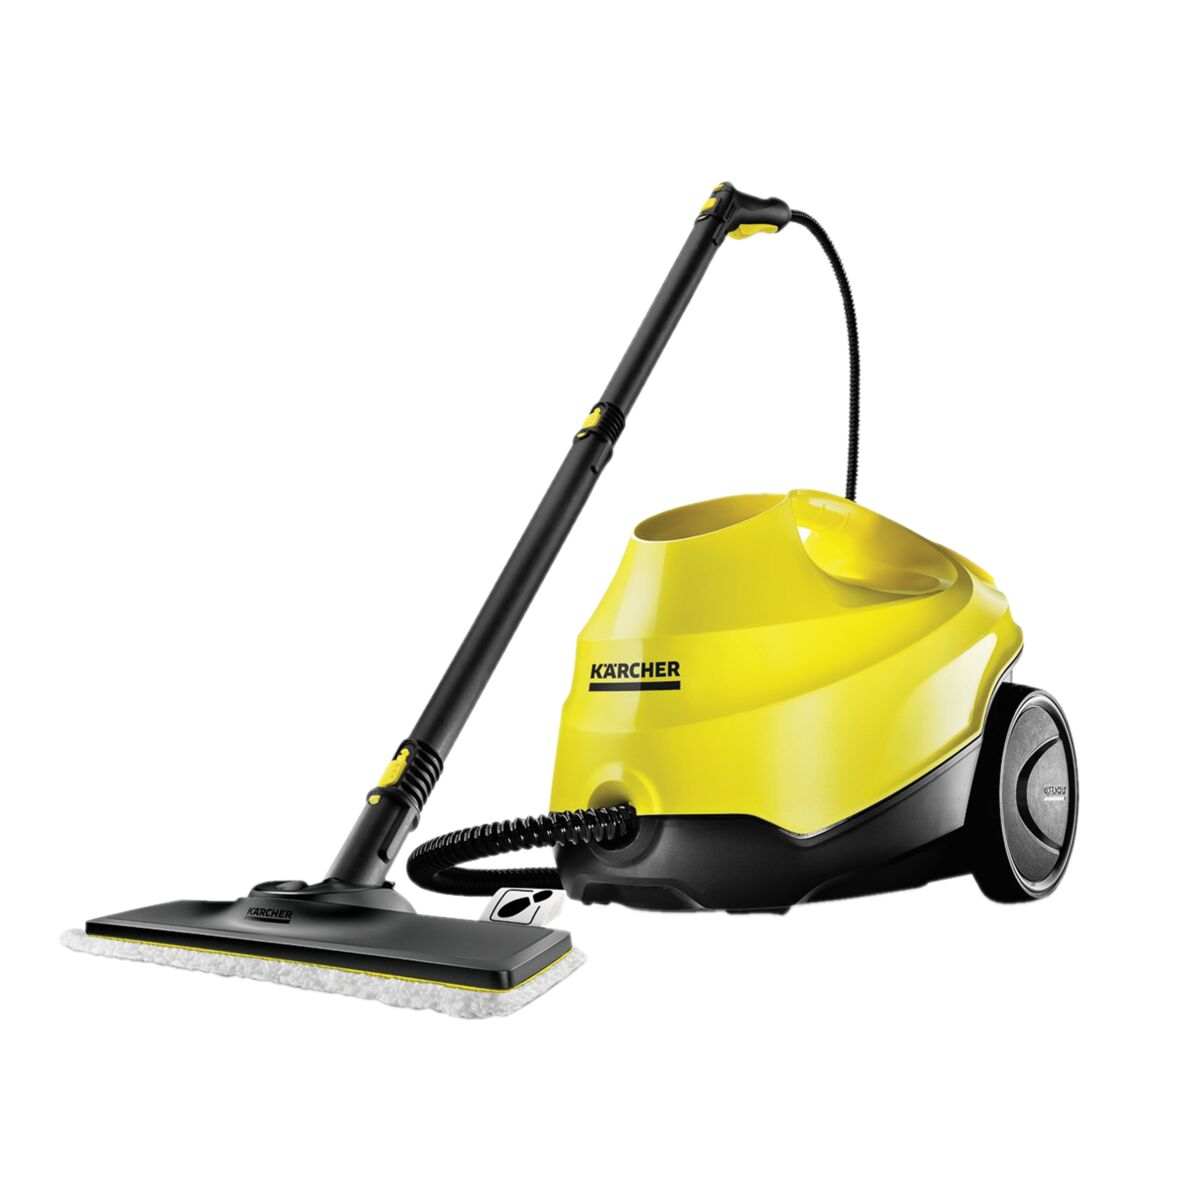 Steam Cleaner 1900w 1ph Sc3 Karcher Vacuum Cleaners Home Appliances Electronics Appliances Household Saco Store